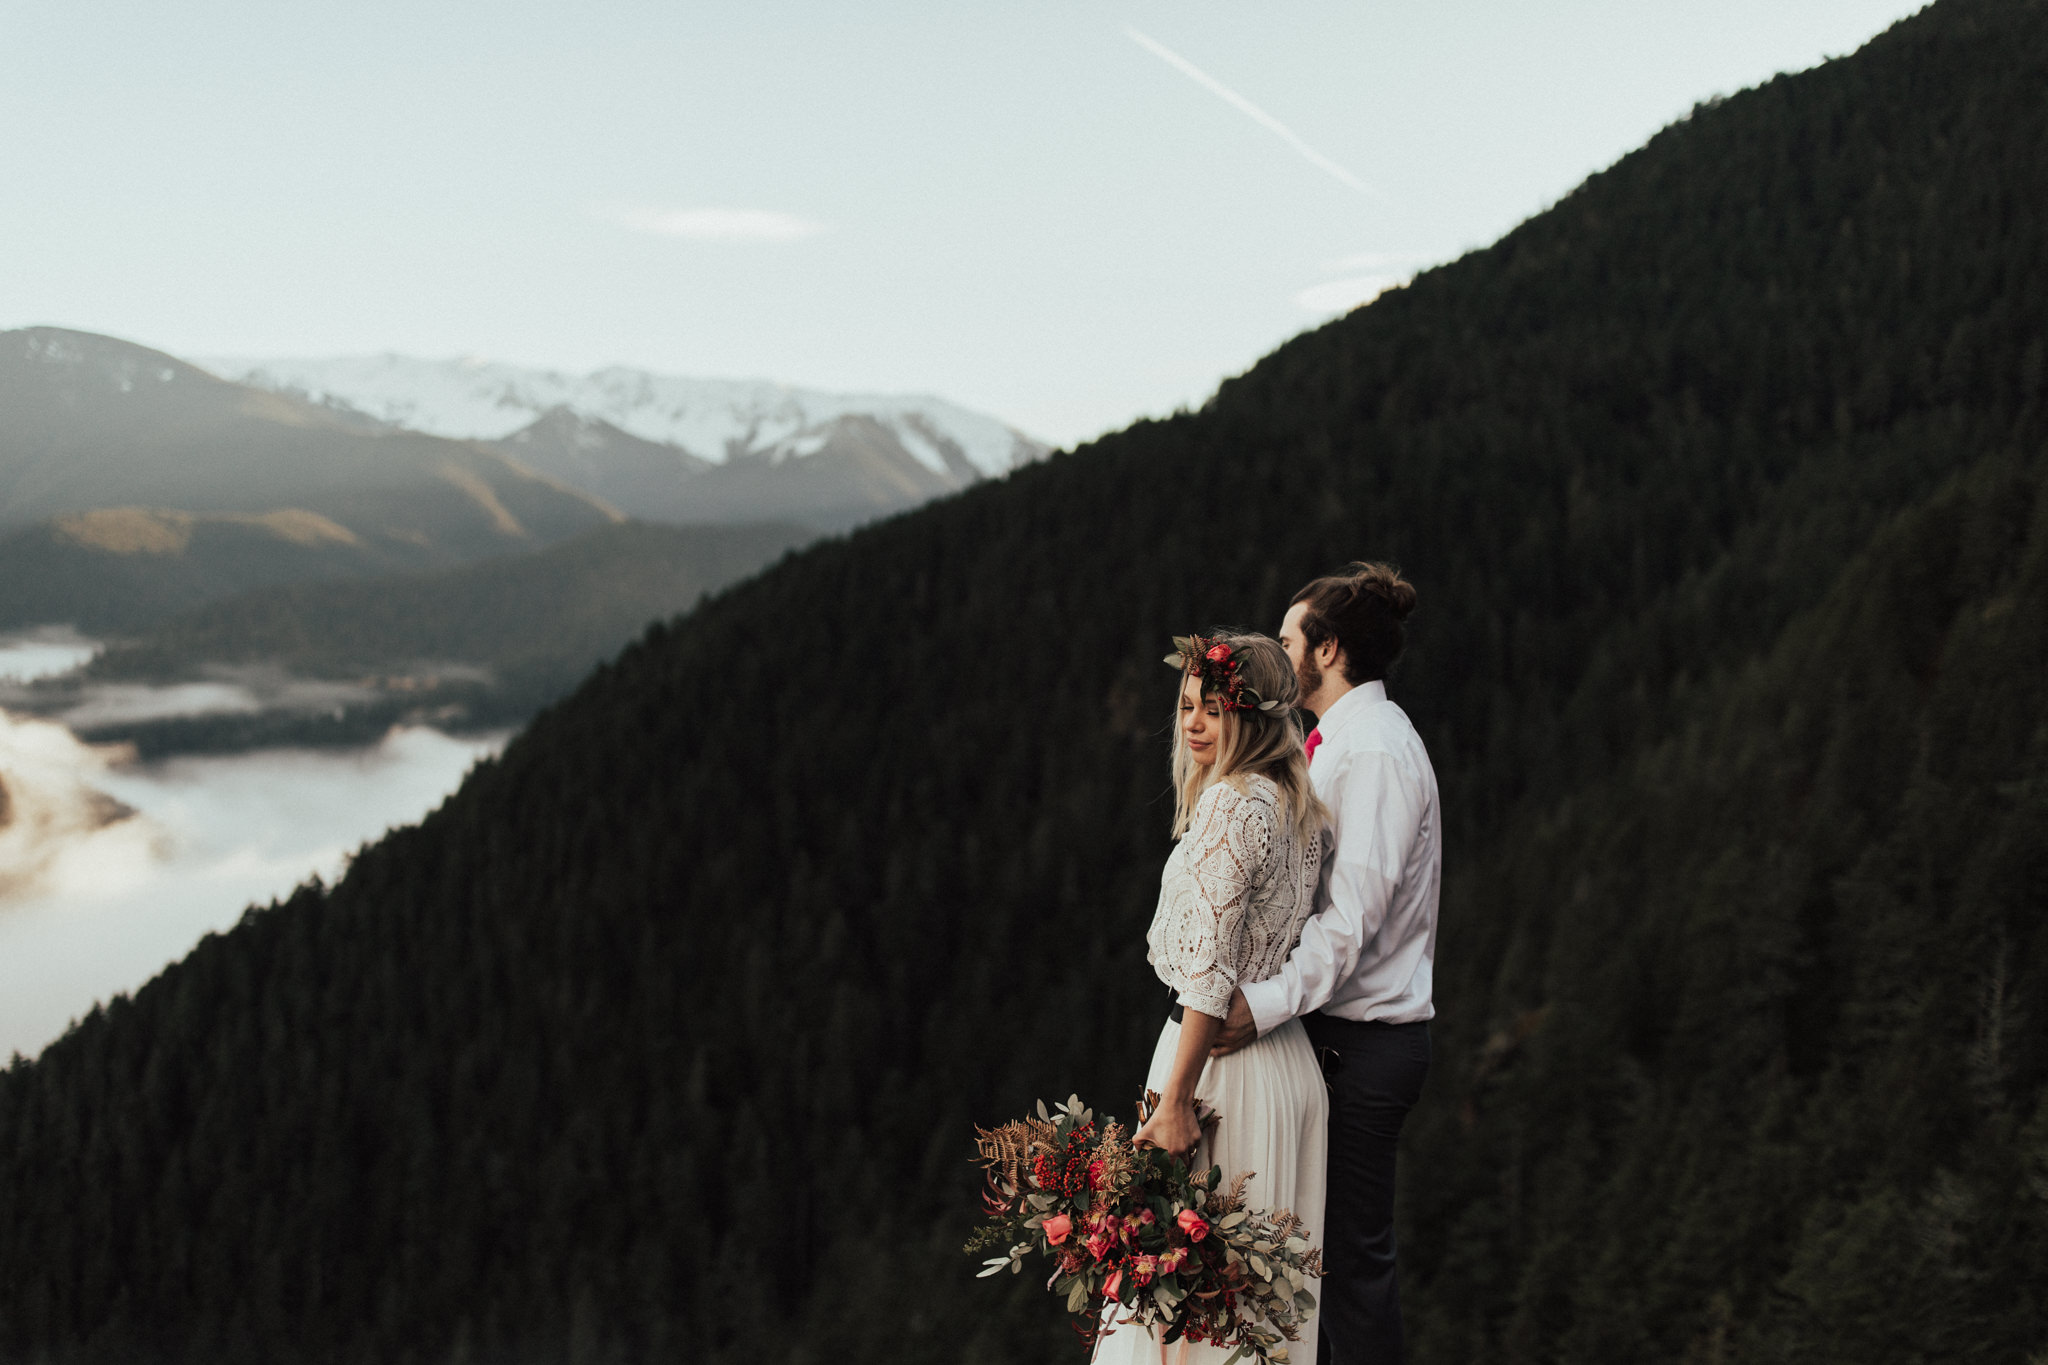 Elopements - Elopements with fewer than 15 guests..